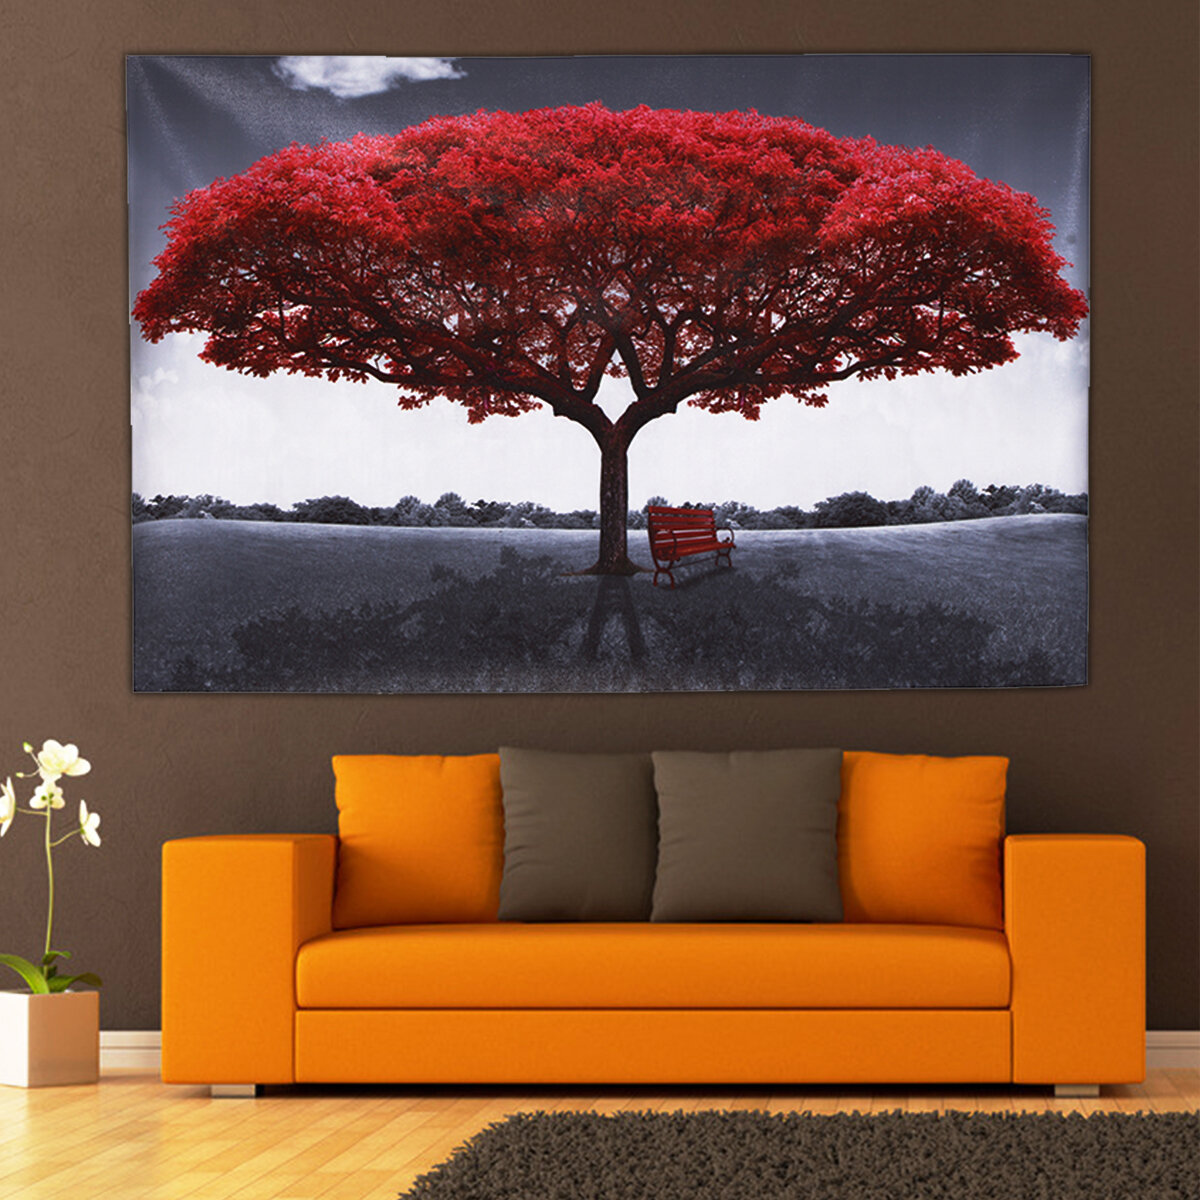 JAPANESE GARDEN RED TREE CANVAS PICTURE PRINT WALL ART HOME DECOR FREE DELIVERY